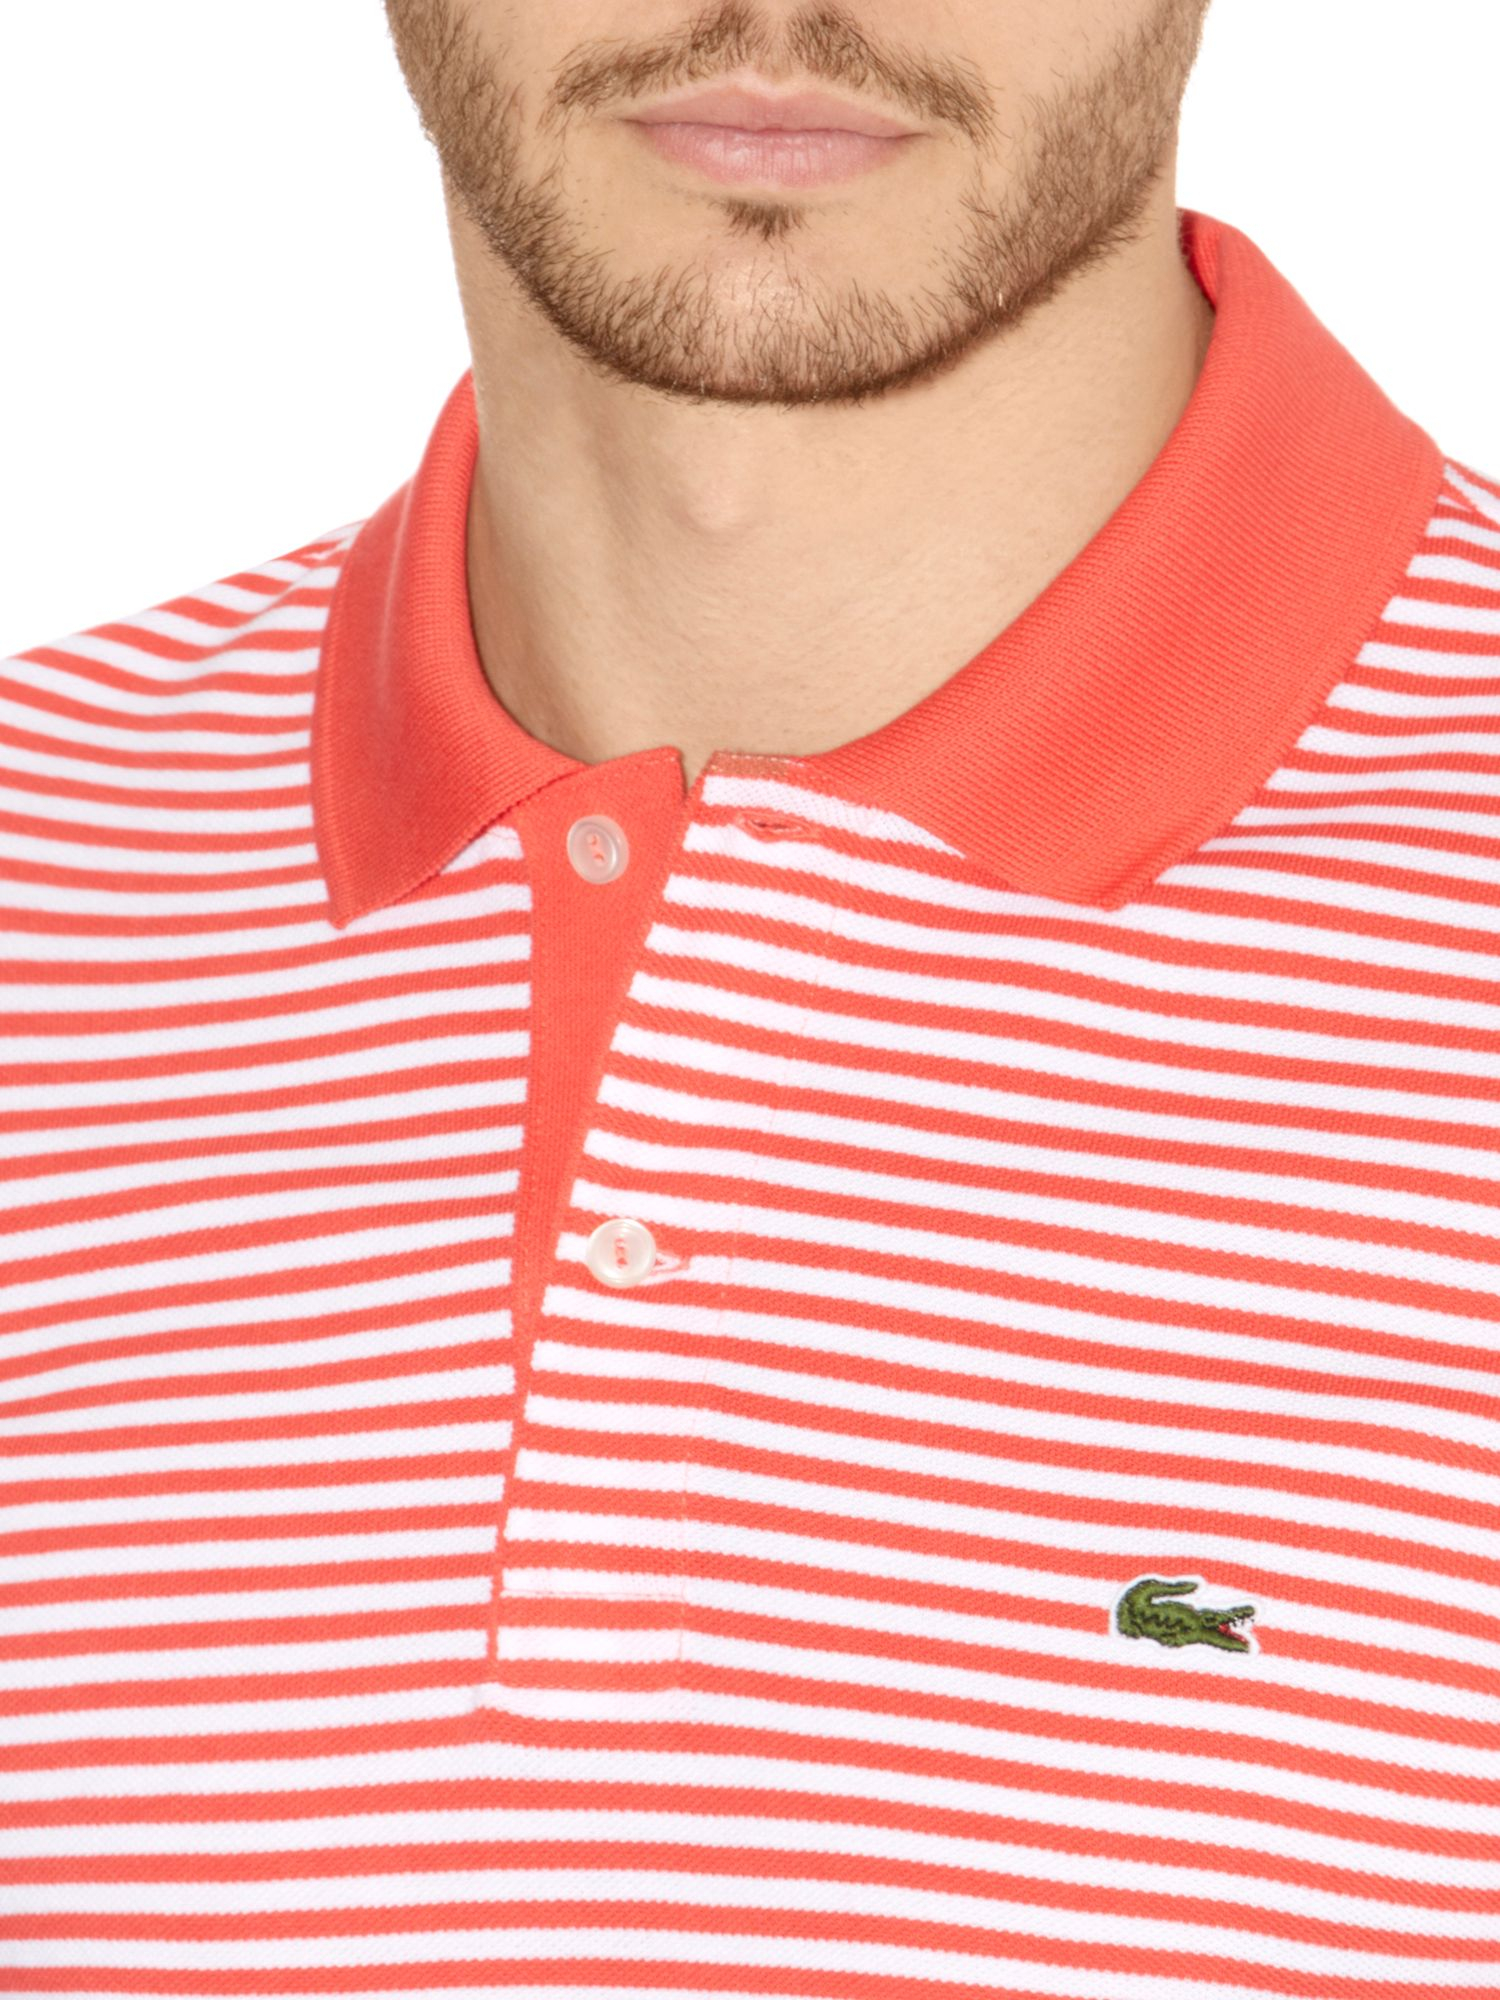 Lyst lacoste striped polo shirt in red for men for Lacoste stripe pique polo shirt